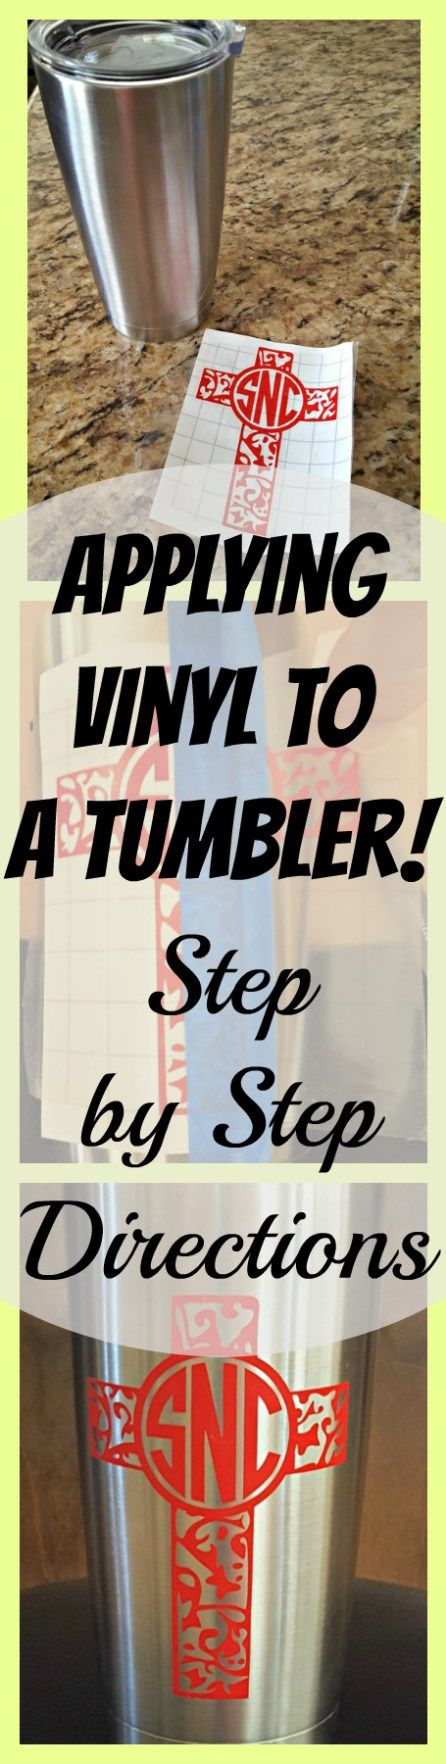 Unique Vinyl Cutter Ideas On Pinterest Silhouette Vinyl - How to make vinyl decals